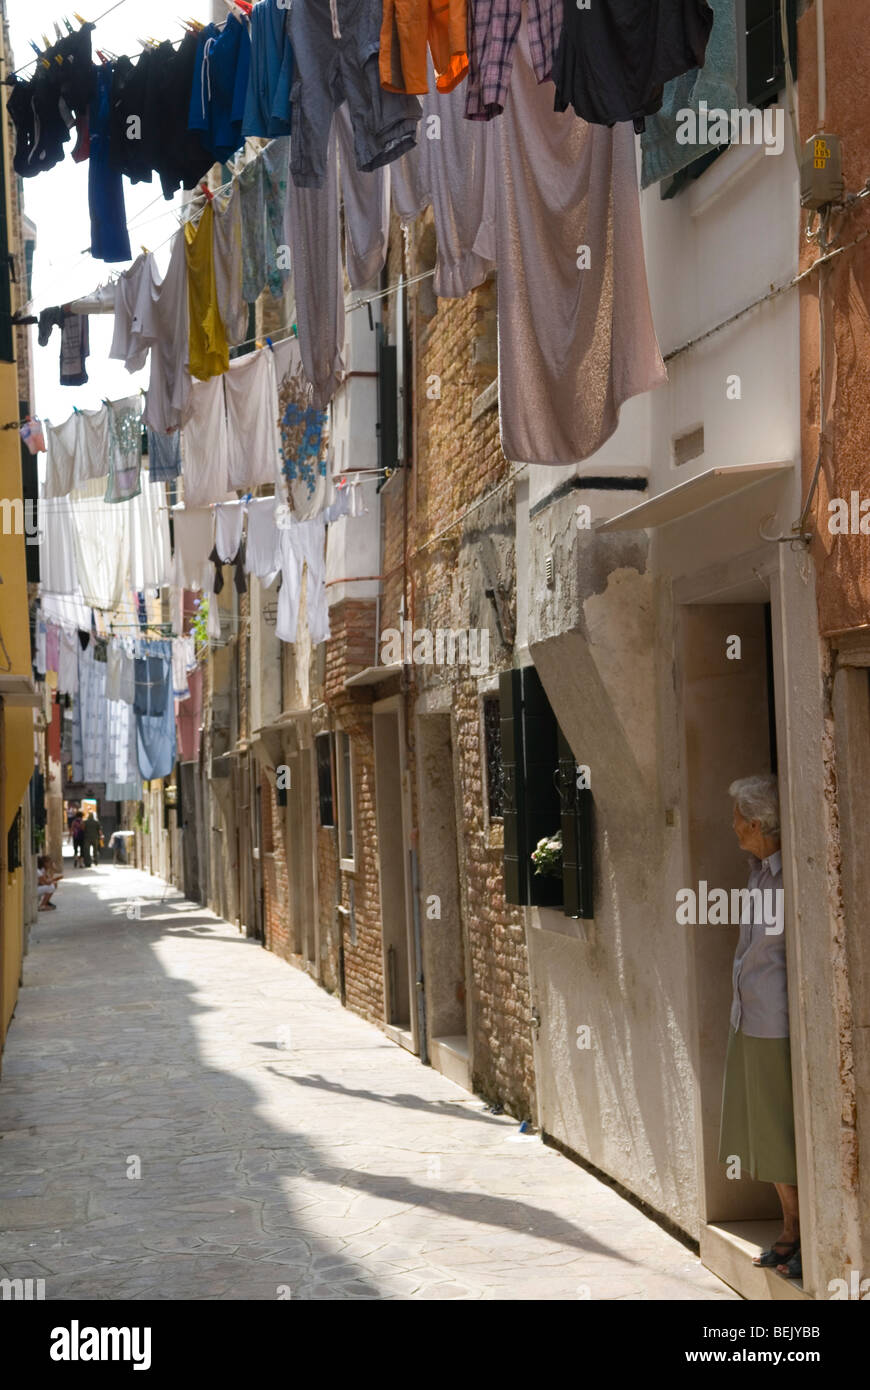 Venice Italy Public housing washing hanging out to dry Arsenale Venice. HOMER SYKES - Stock Image